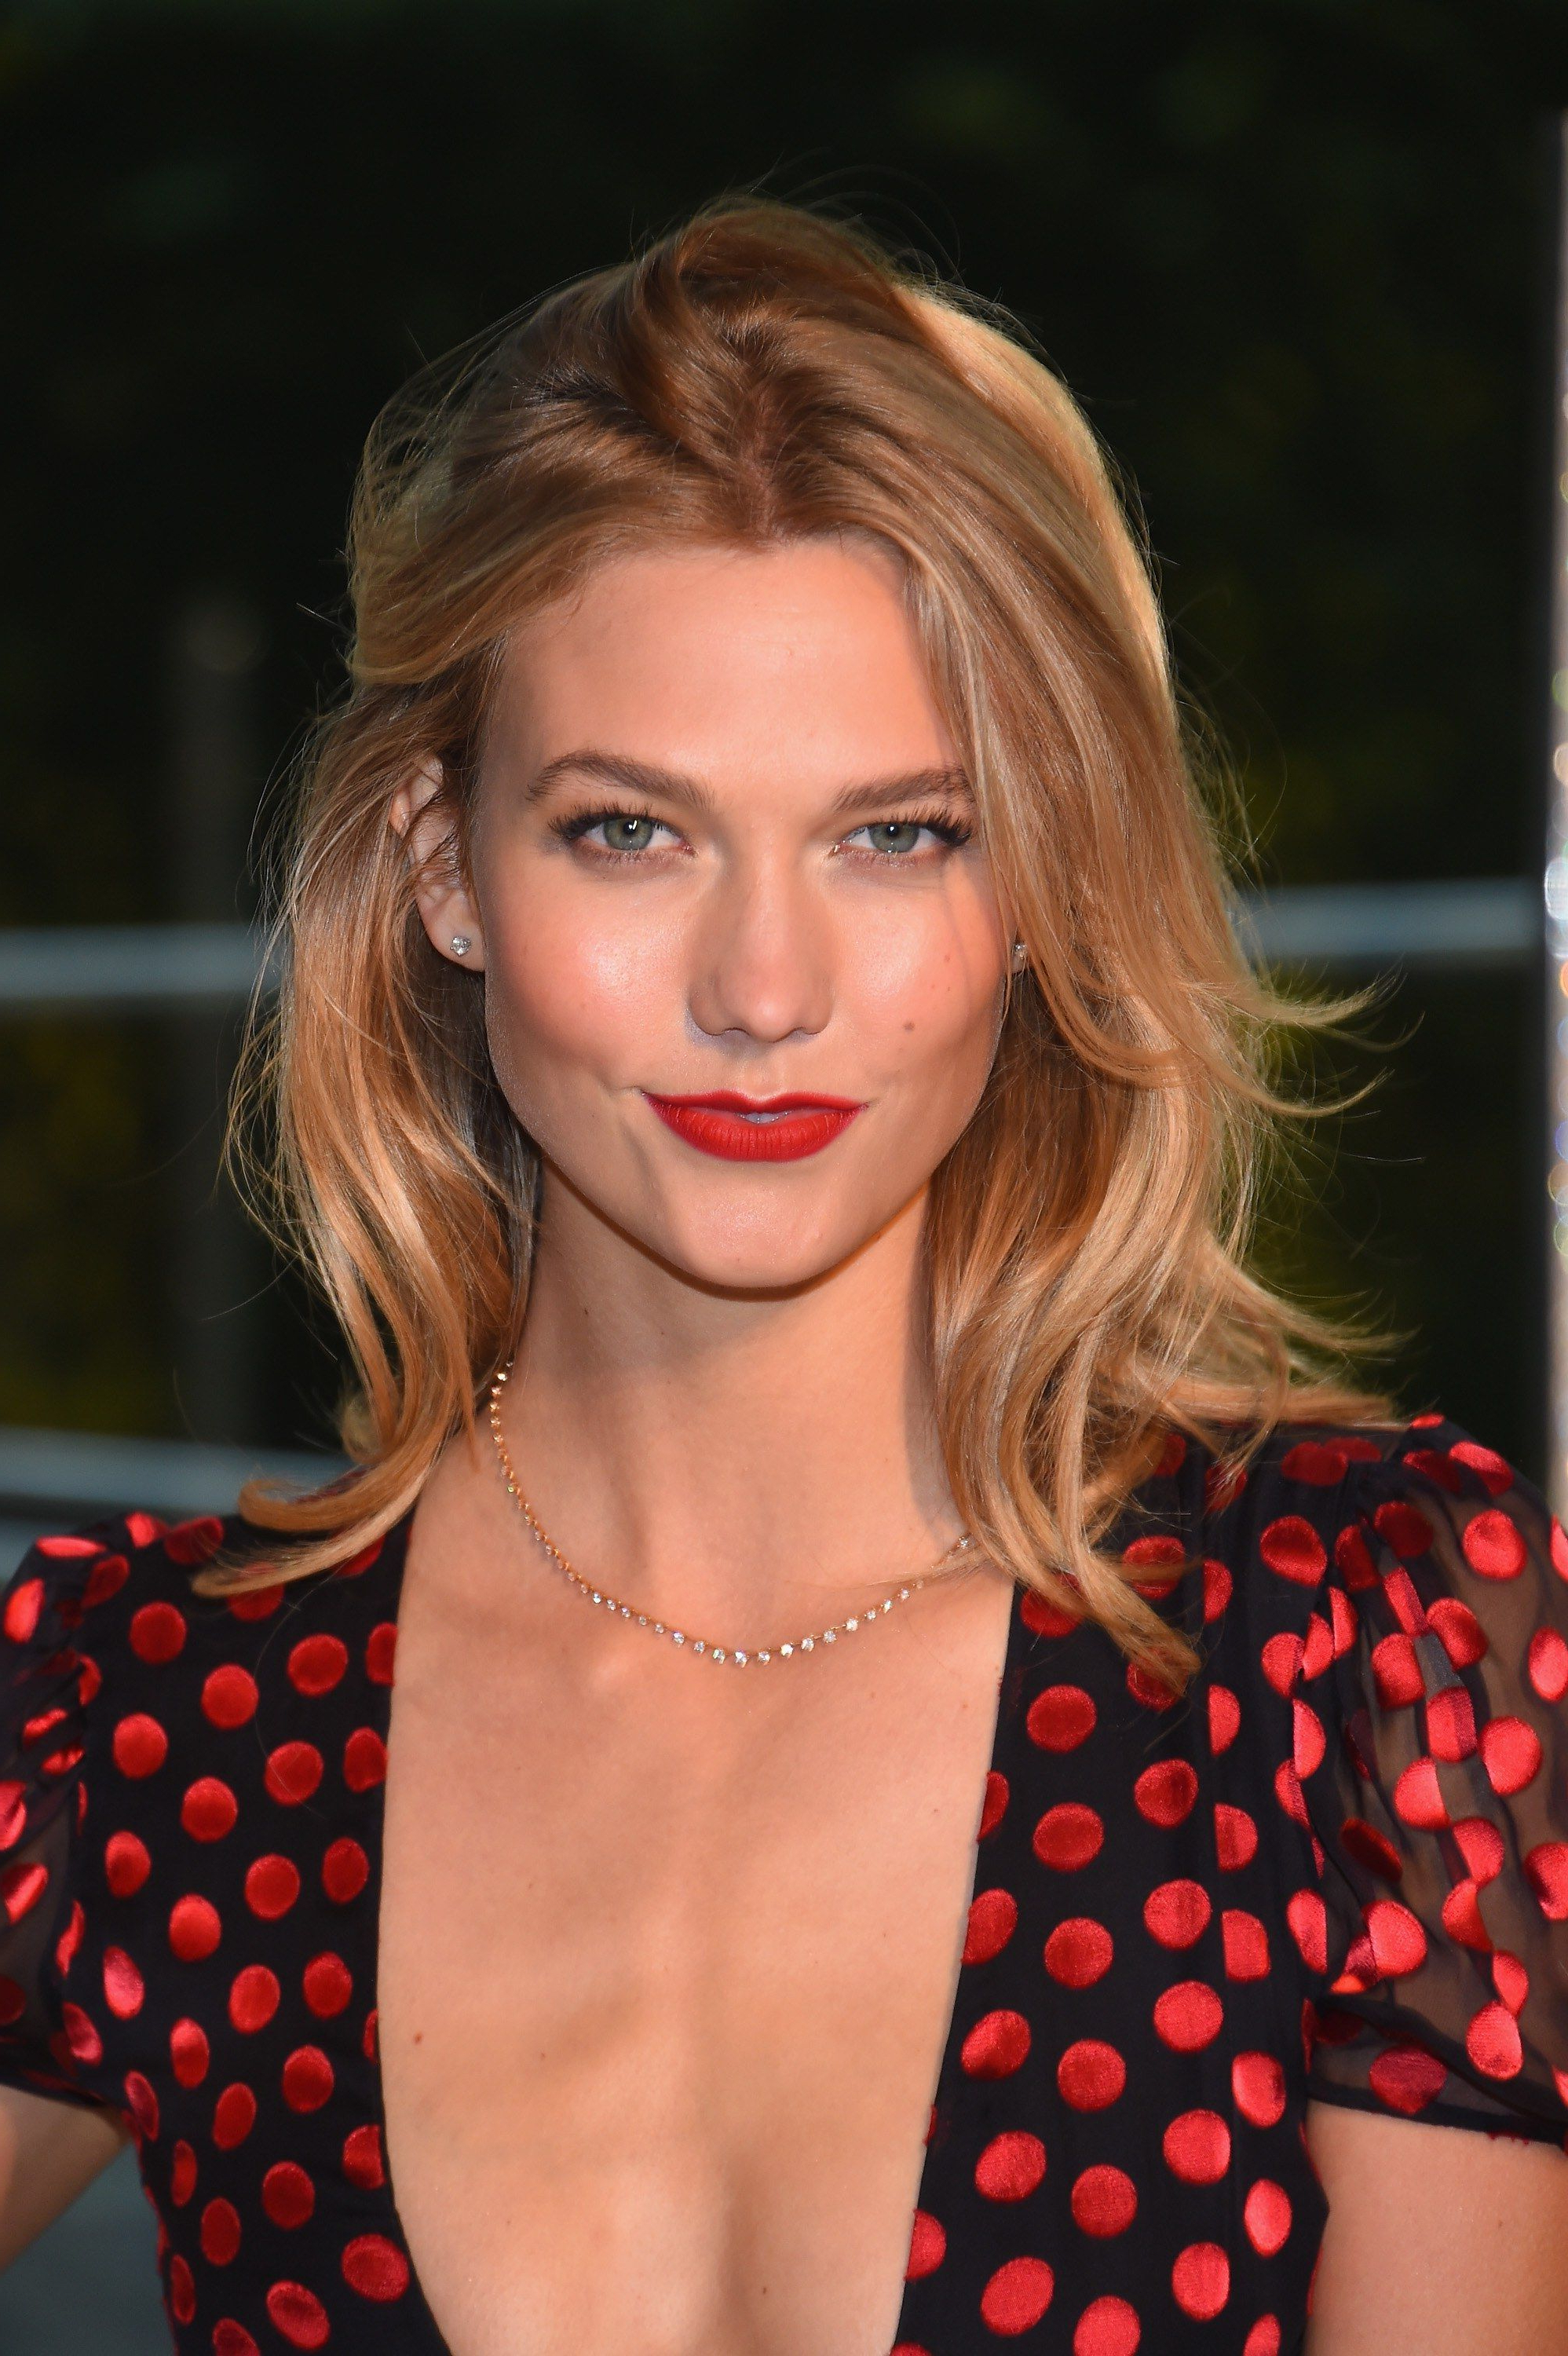 Karlie Kloss   Karlie Kloss   Pinterest   Karlie Kloss In Karlie Kloss Short Haircuts (View 12 of 25)